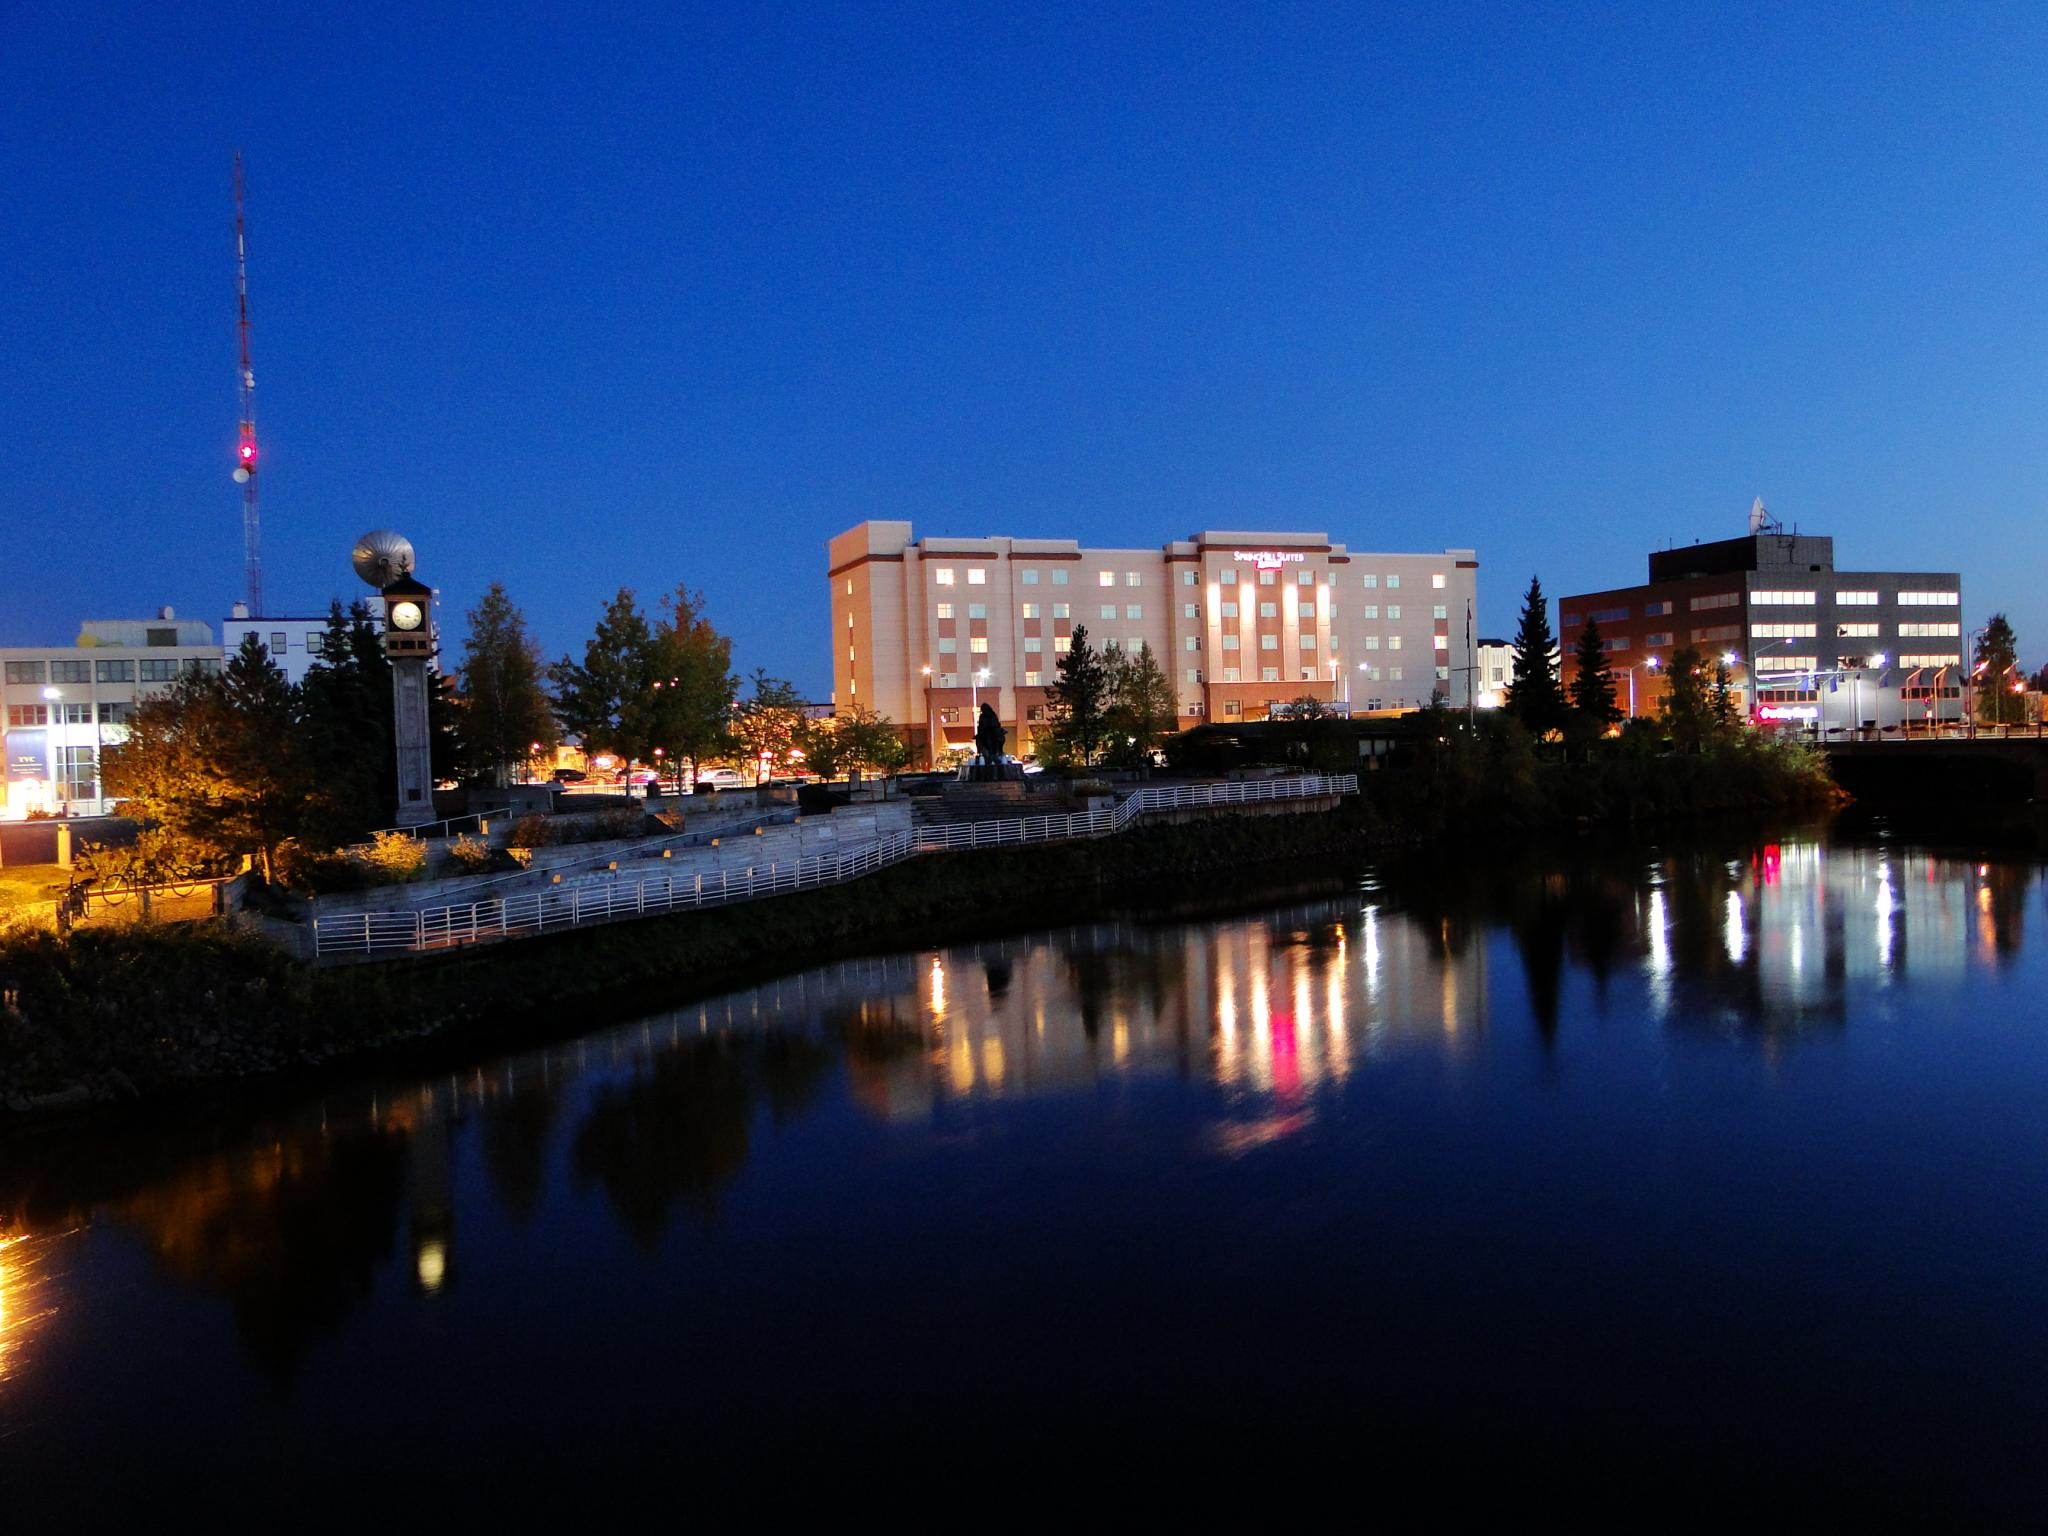 fairbanks_mike_wikimedia_downtown_fairbanks_alaska.jpg